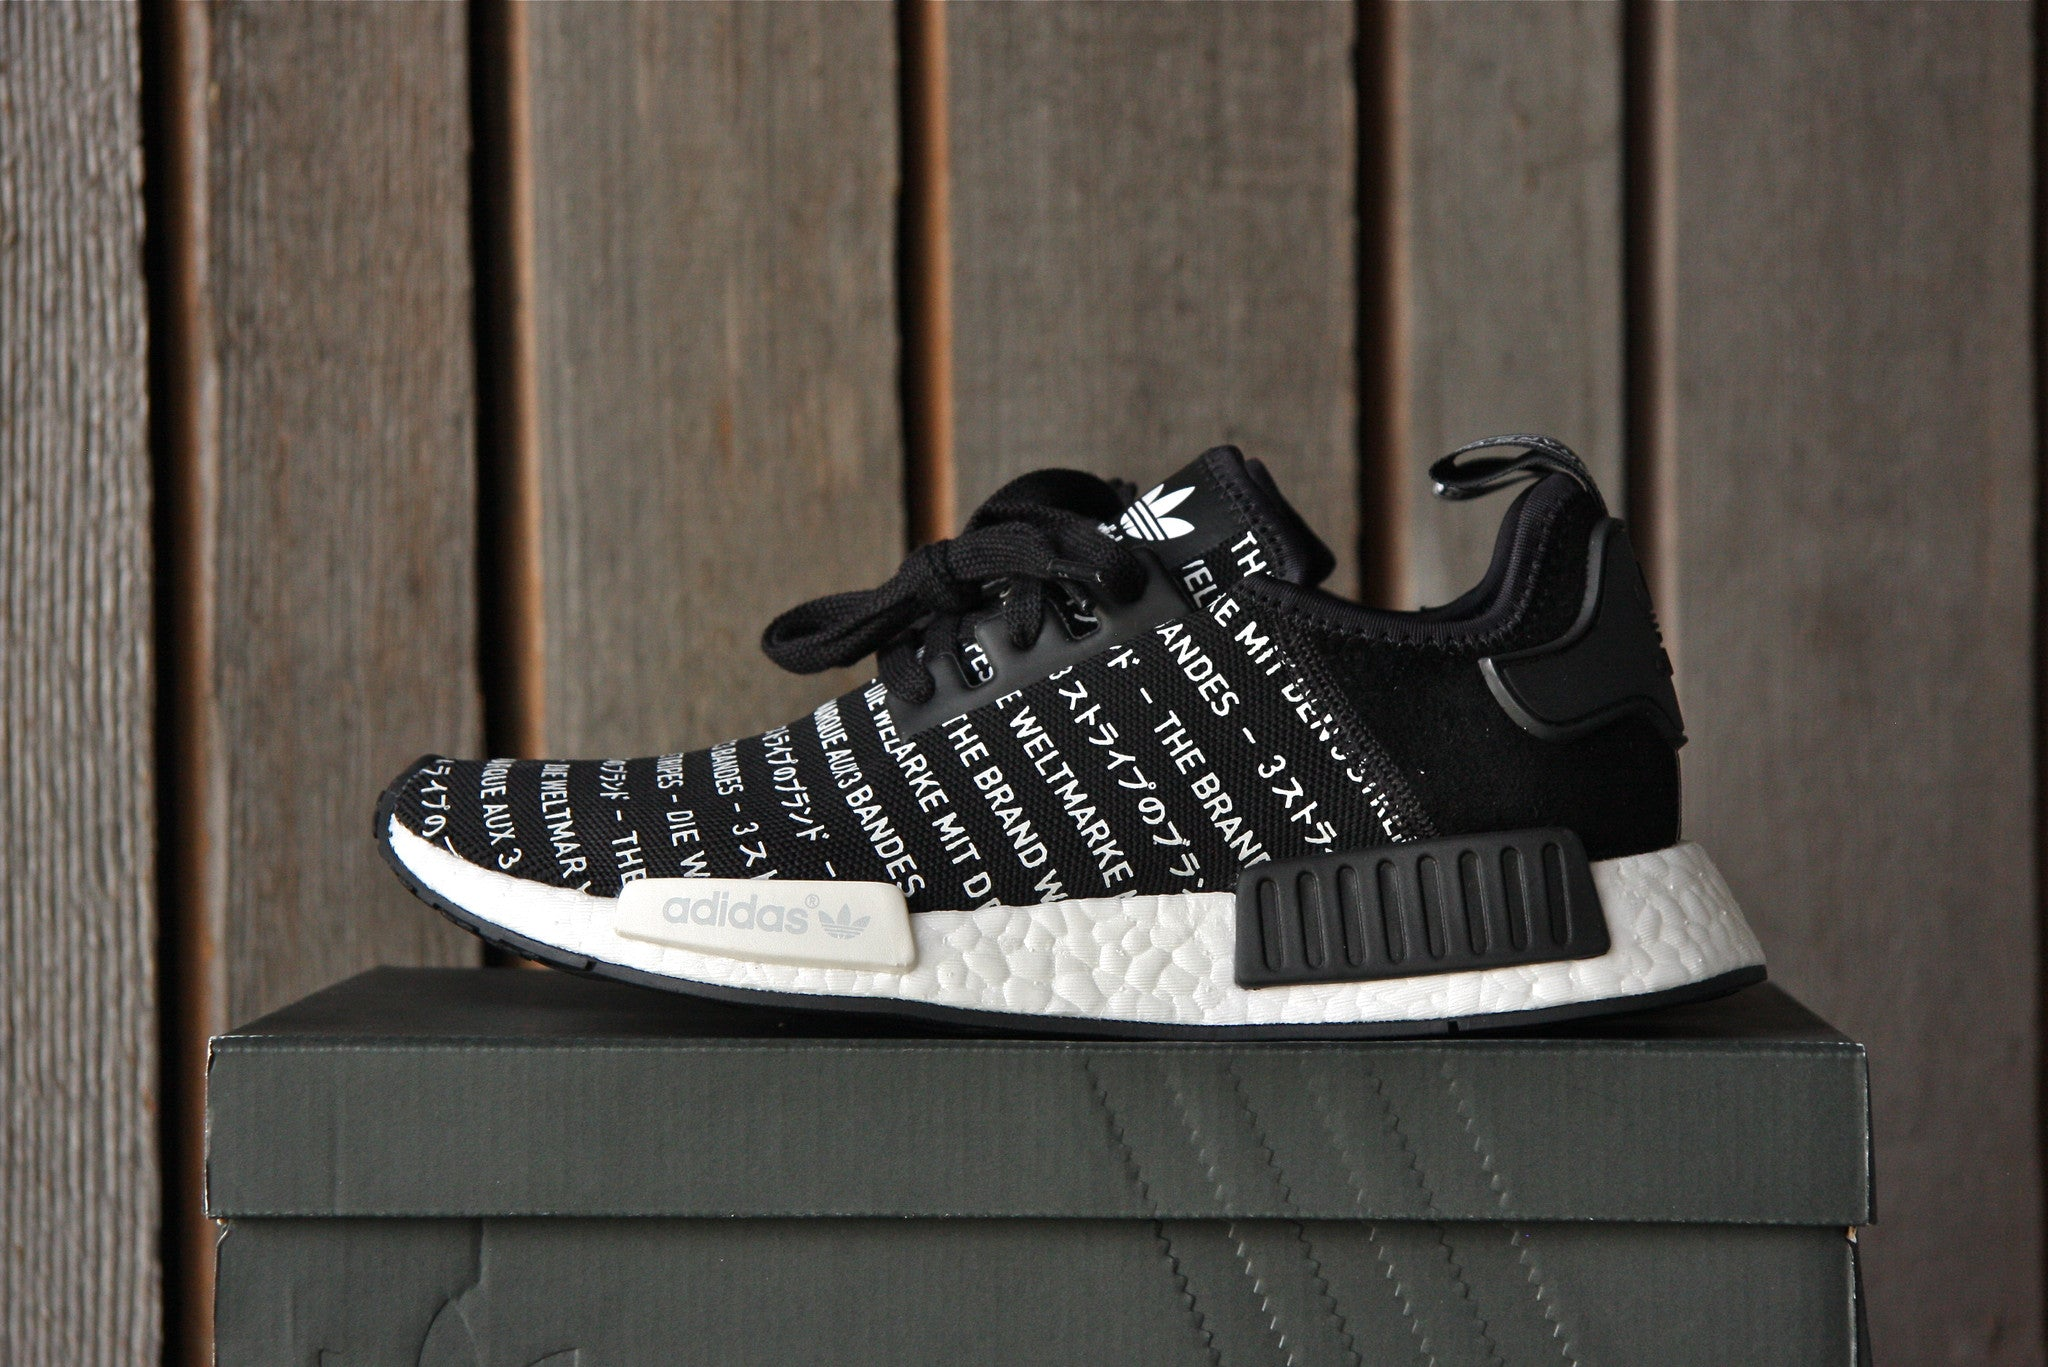 Adidas NMD R1 (Blackout)